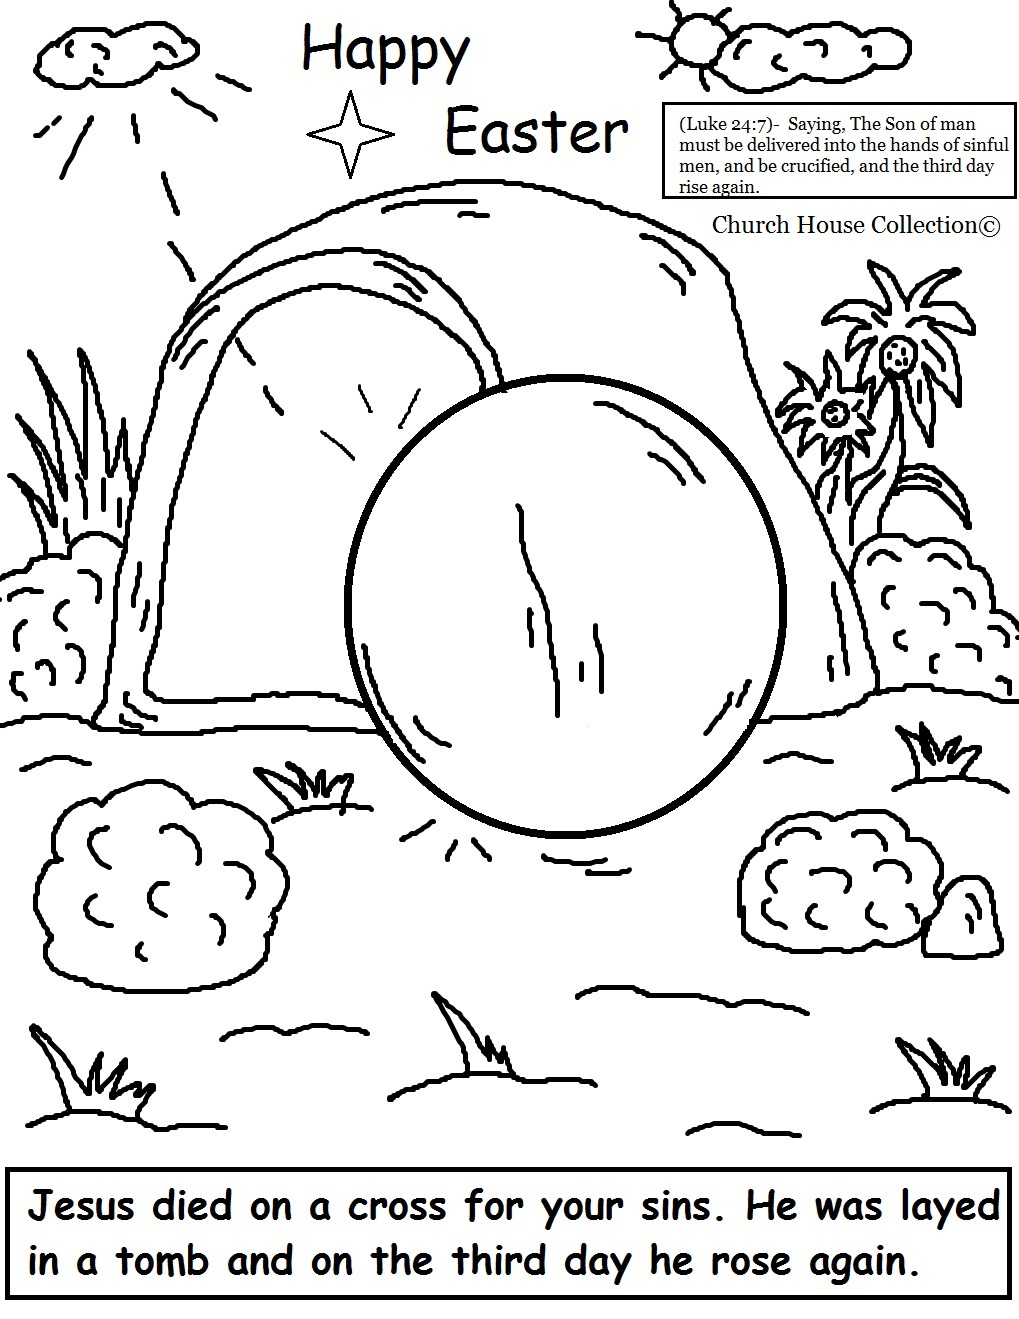 Printable Religious Easter Coloring Pages Top Coloring Pages